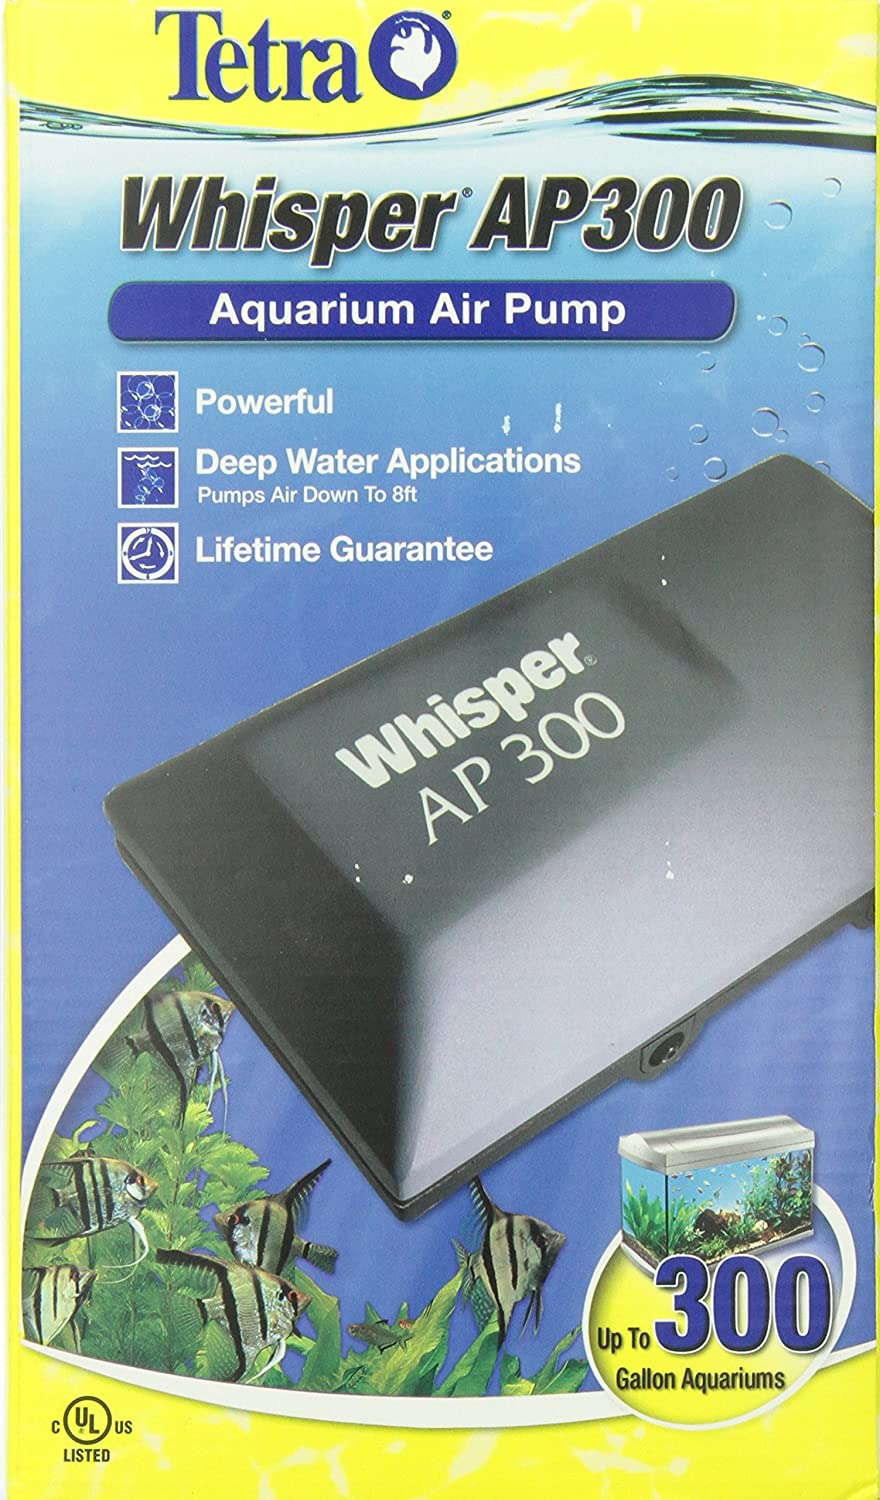 91Zm5Fak 4L._SL1500_ amazon com tetra 26075 whisper aquarium air pump ap300, up to  at mr168.co